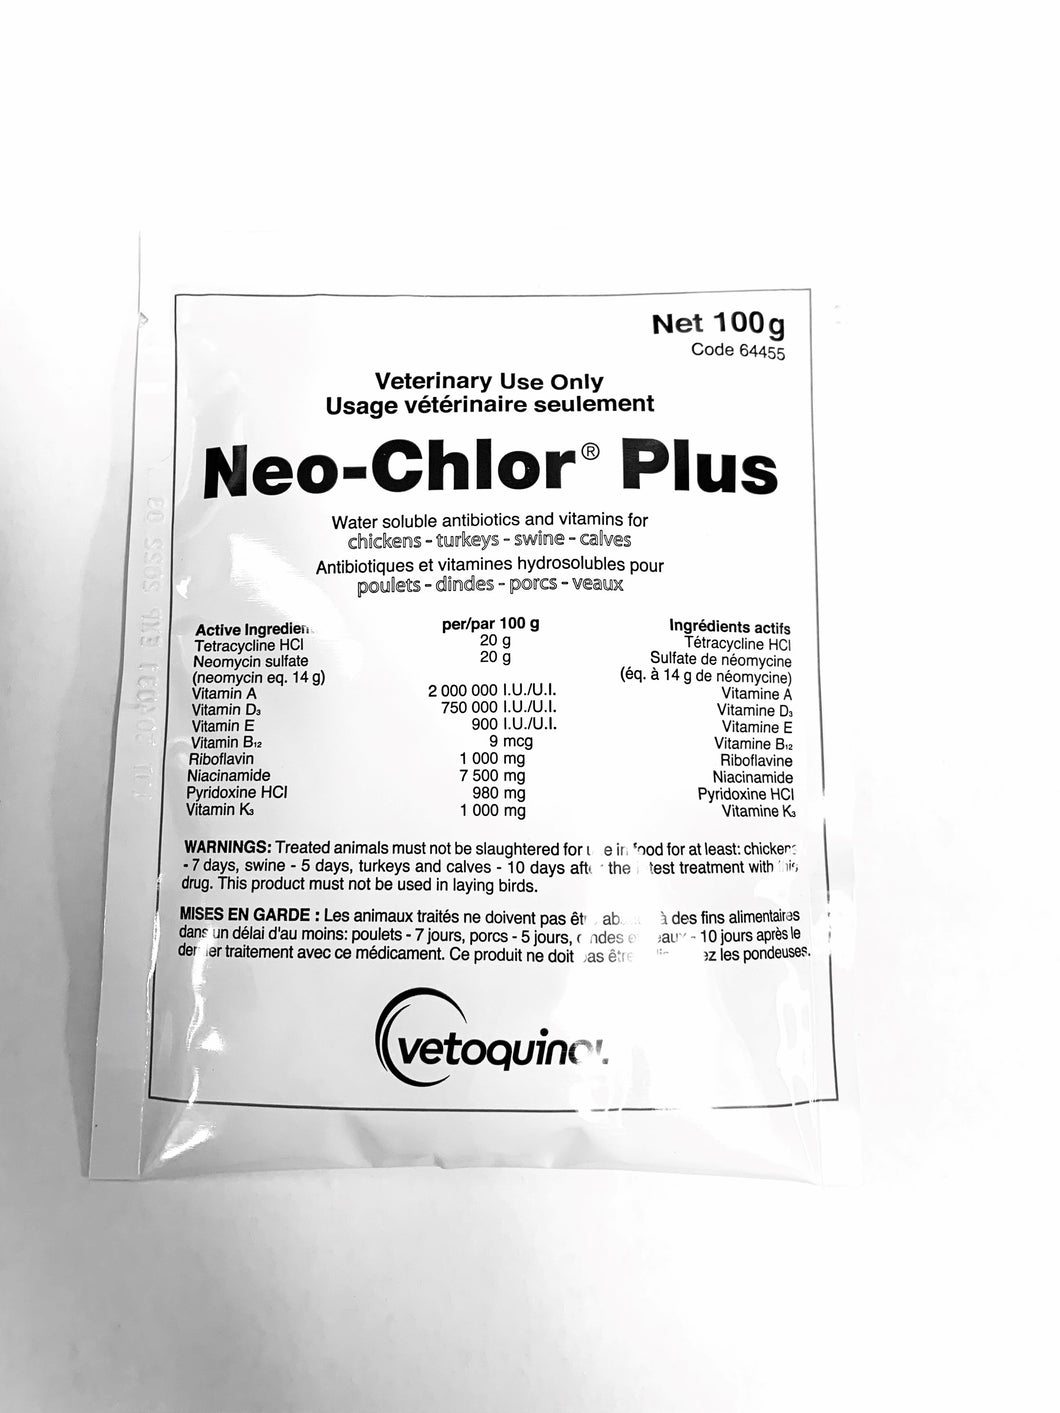 Neo-Chlor Plus